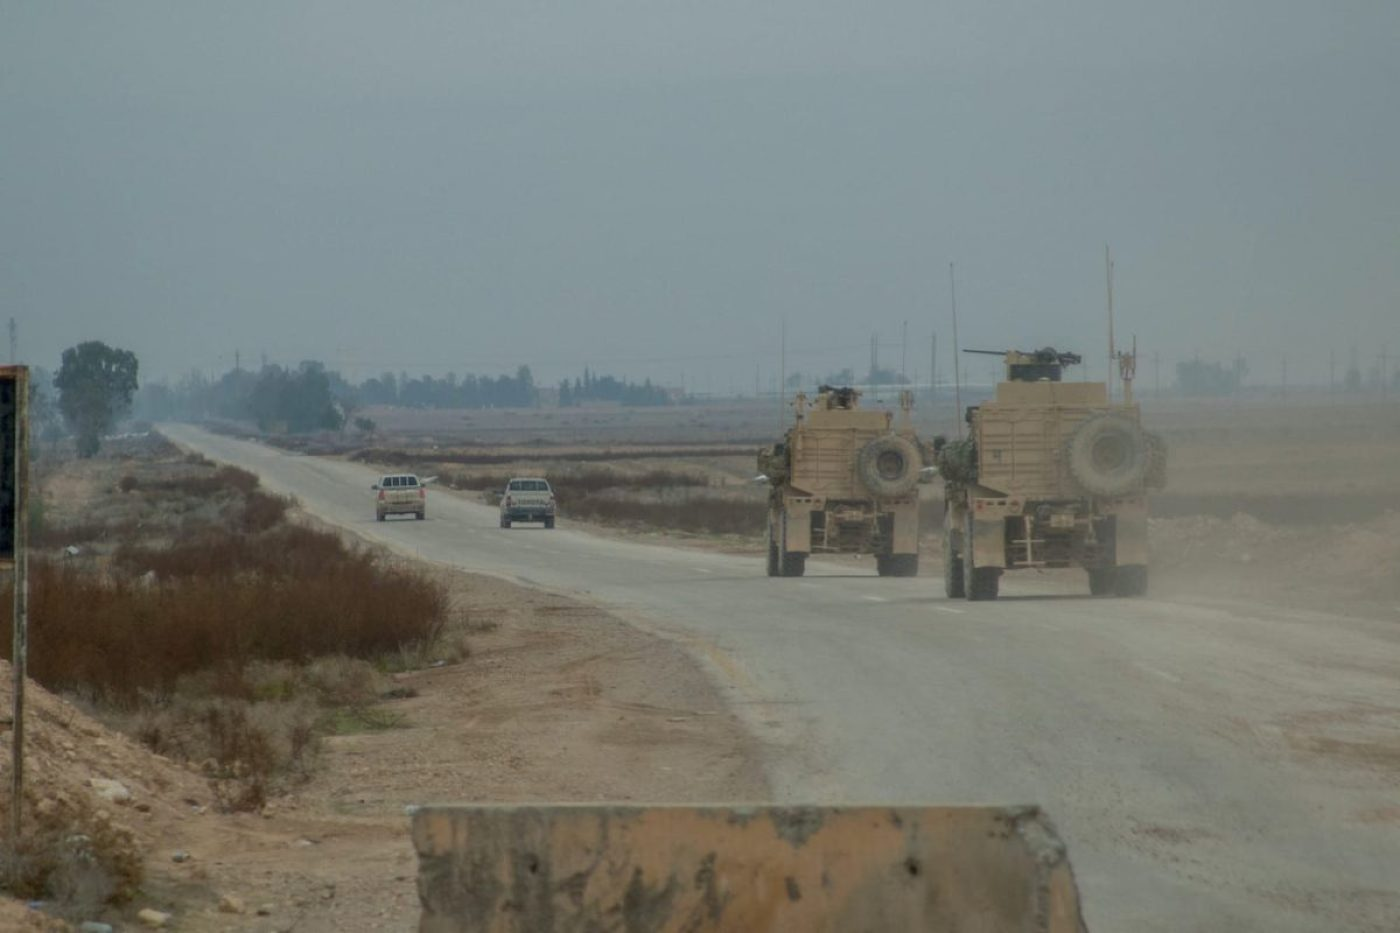 Members of Syrian Democratic Forces (SDF) lead a Coalition convoy in Deir ez-Zor province, Syria, Nov. 19, 2018. Coalition forces face the threat of ISIS-set improvised explosive devices daily, but the SDF continue to safeguard and protect Coalition forces on all military convoys in the region. Continued assistance to partner forces is essential to setting conditions for regional stability. The Coalition and its partners remain united and resolved to prevent the resurgence of ISIS and its violent extremist ideology. (U.S. Army photo by Sgt. Matthew Crane)